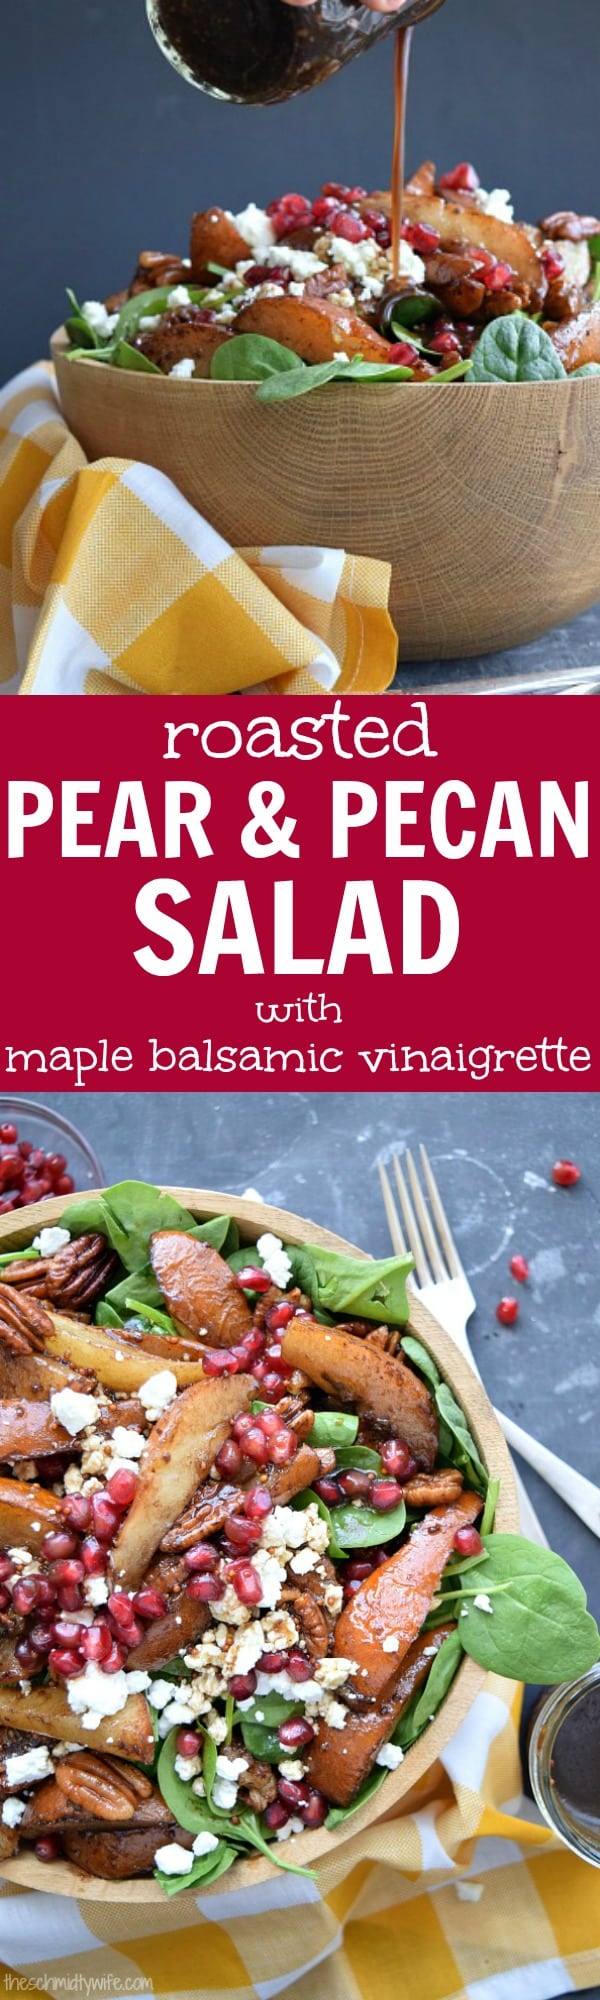 Roasted Pear Pecan Salad